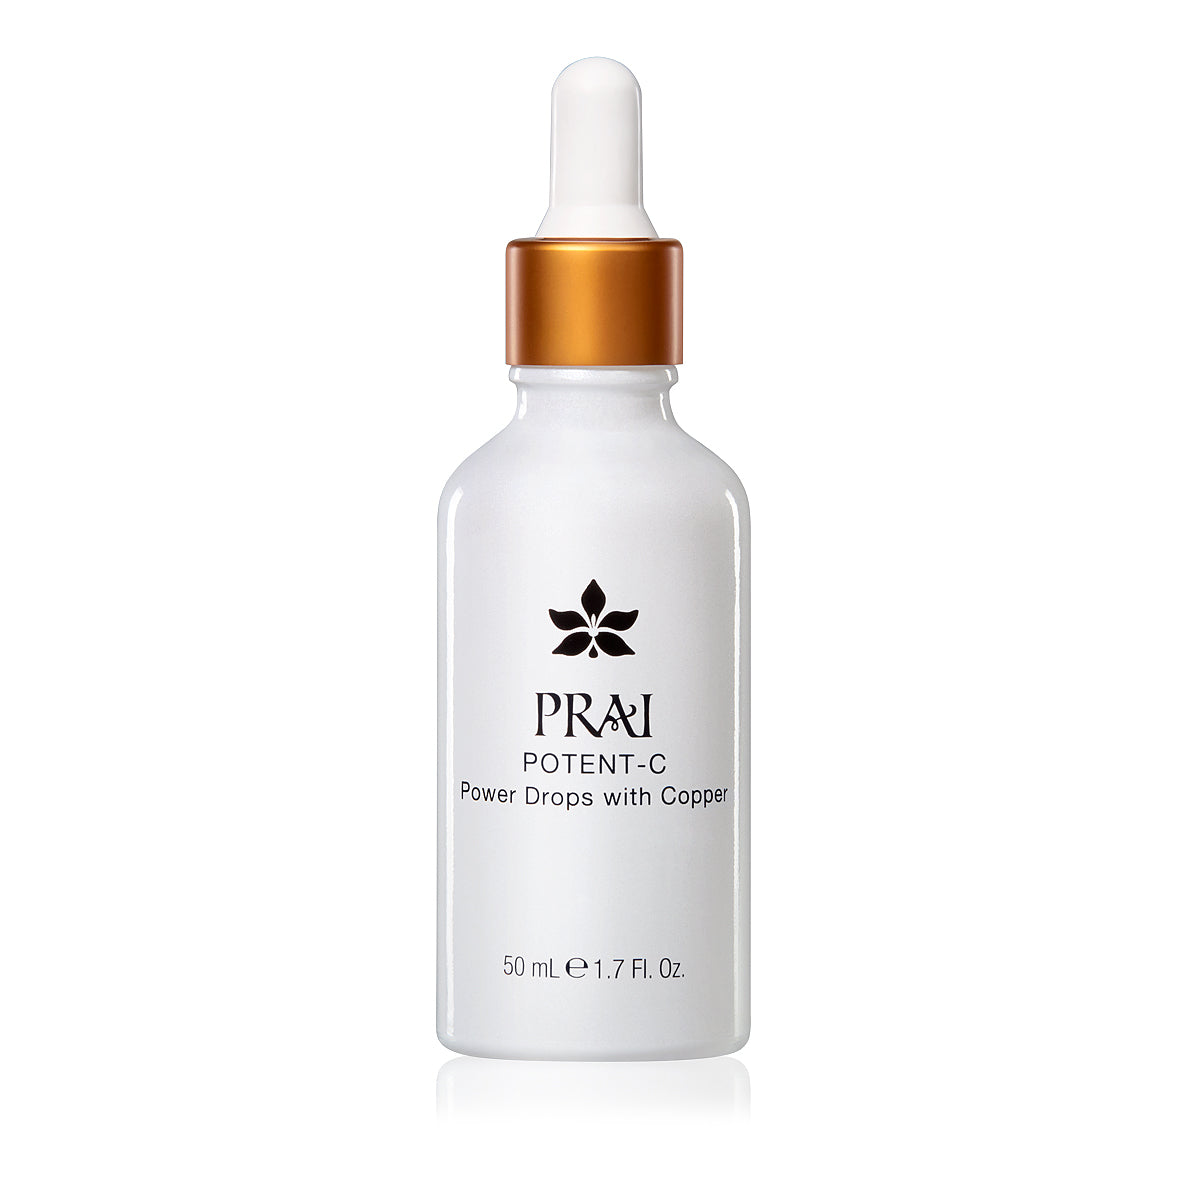 PRAI Beauty Potent-C Power Drops with Copper